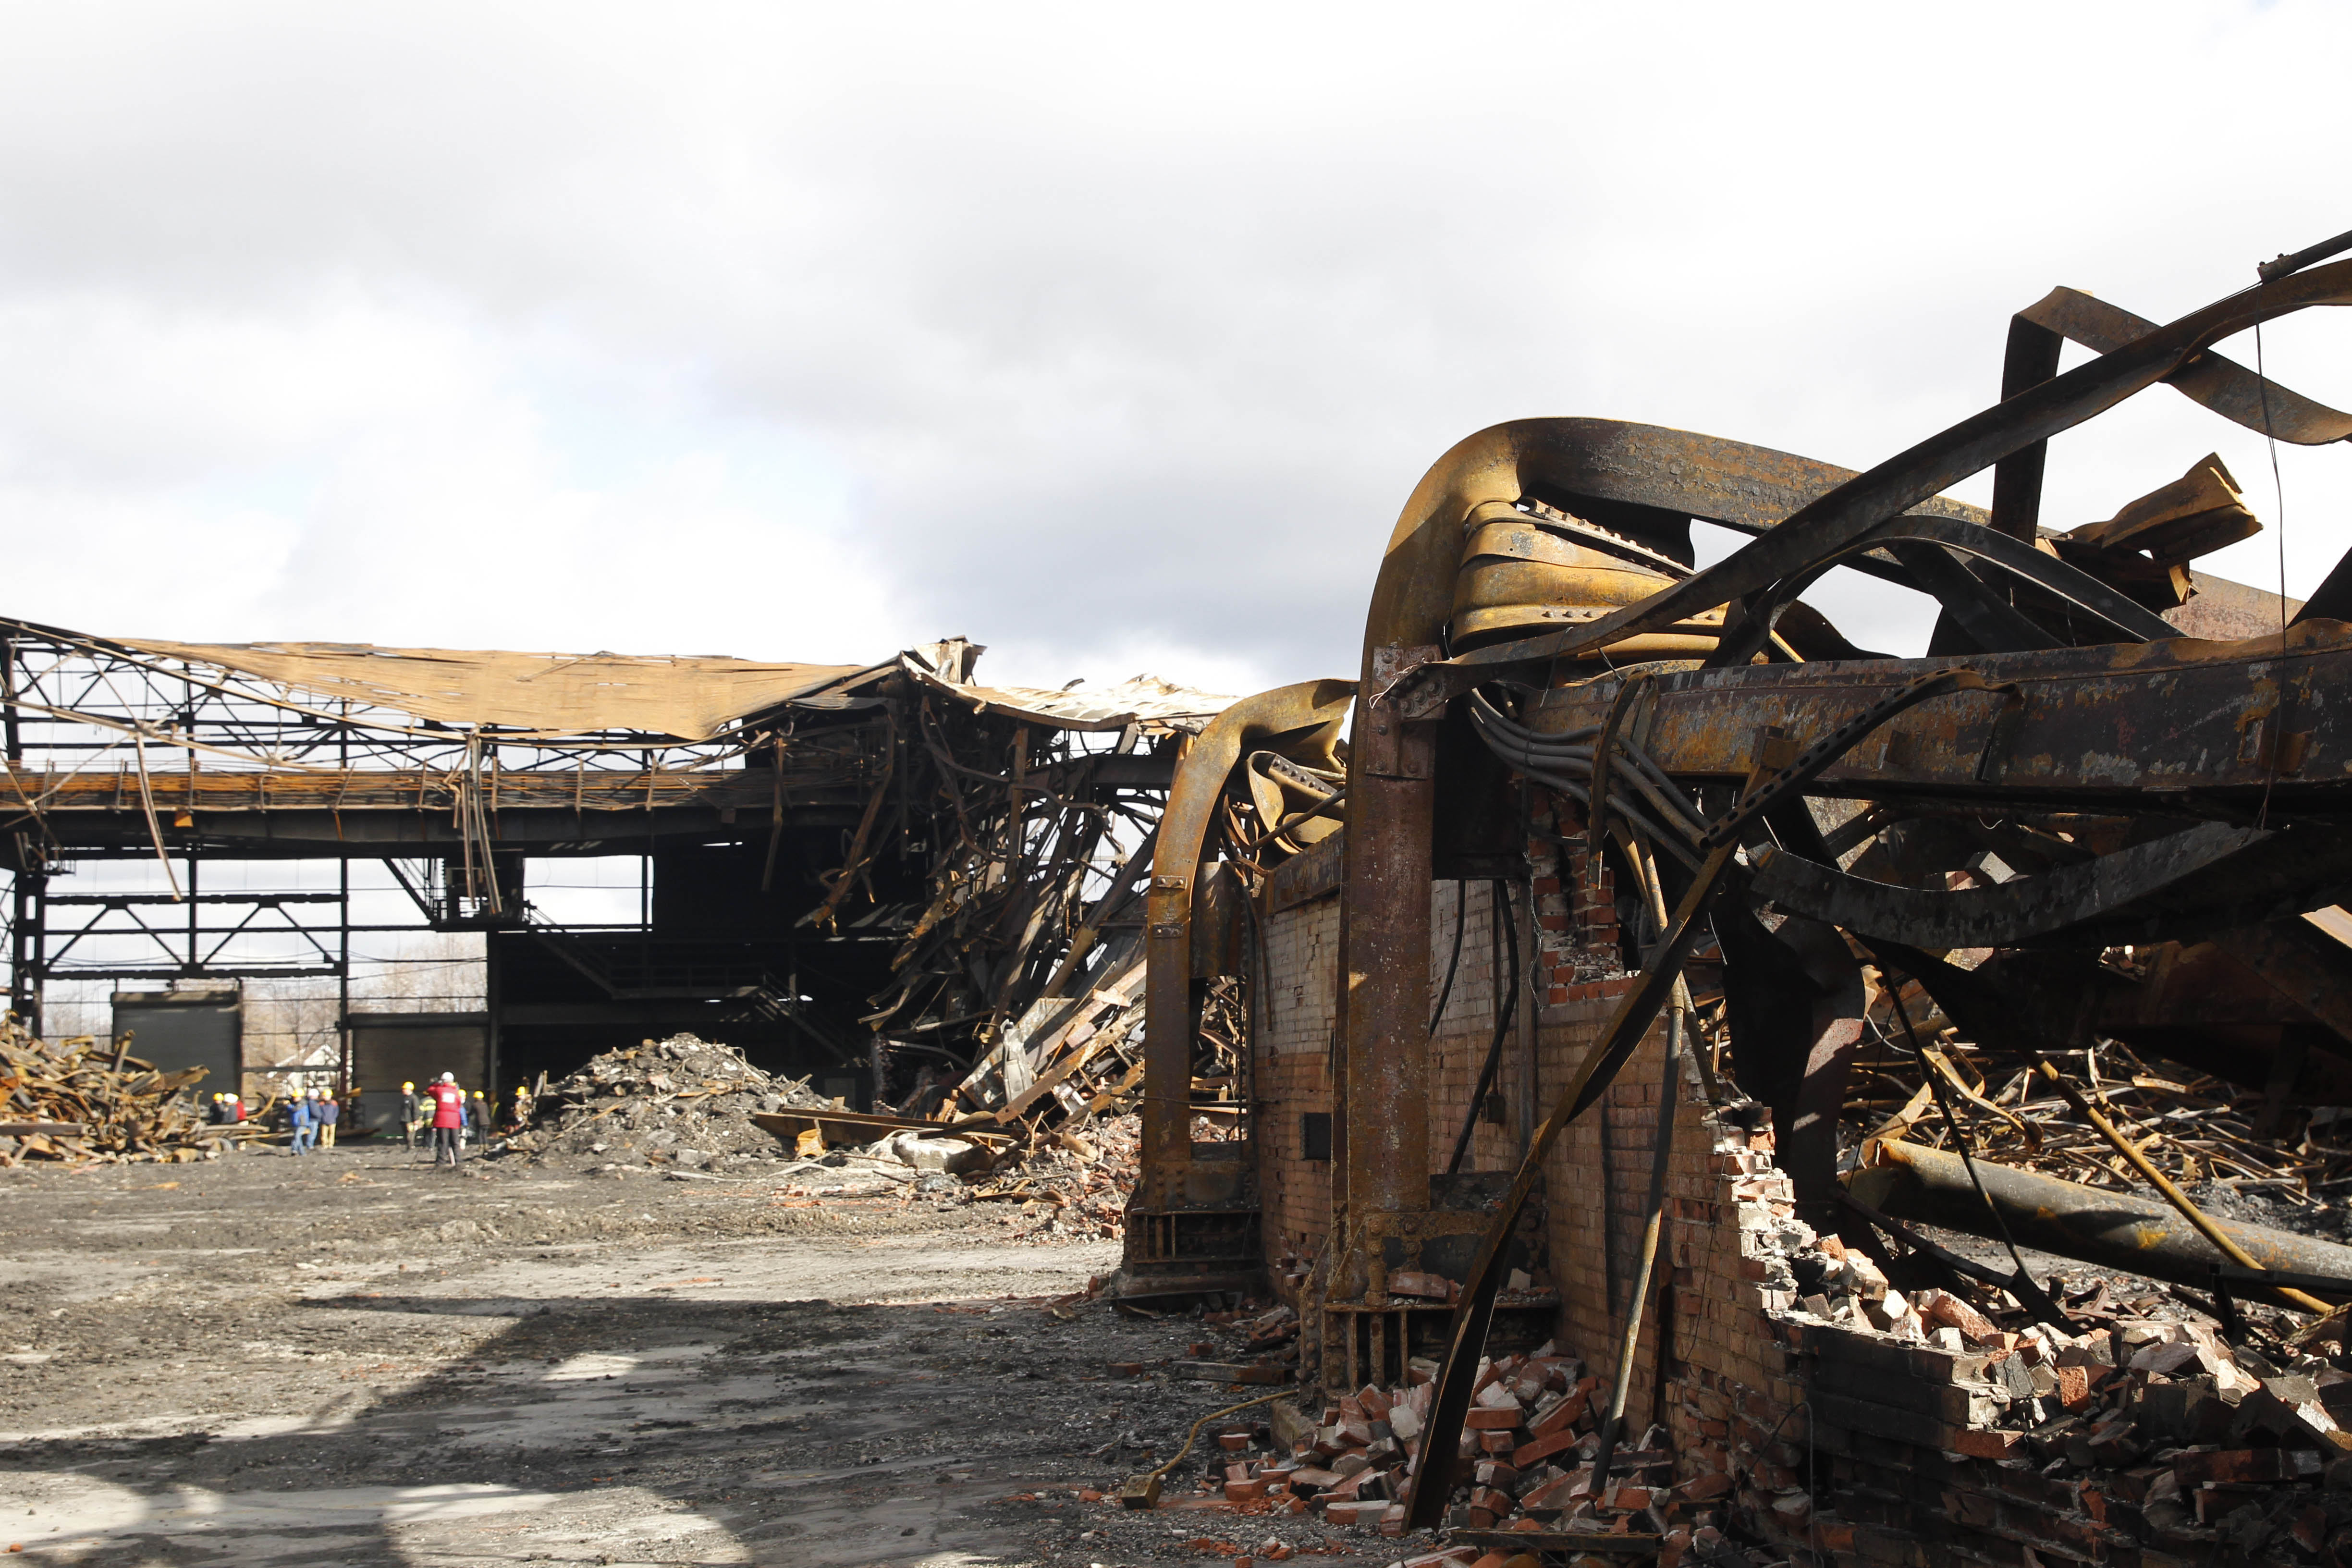 The wreckage of the Bethlehem Steel buildings in Lackawanna that were demolished by fire. (Sharon Cantillon/Buffalo News)